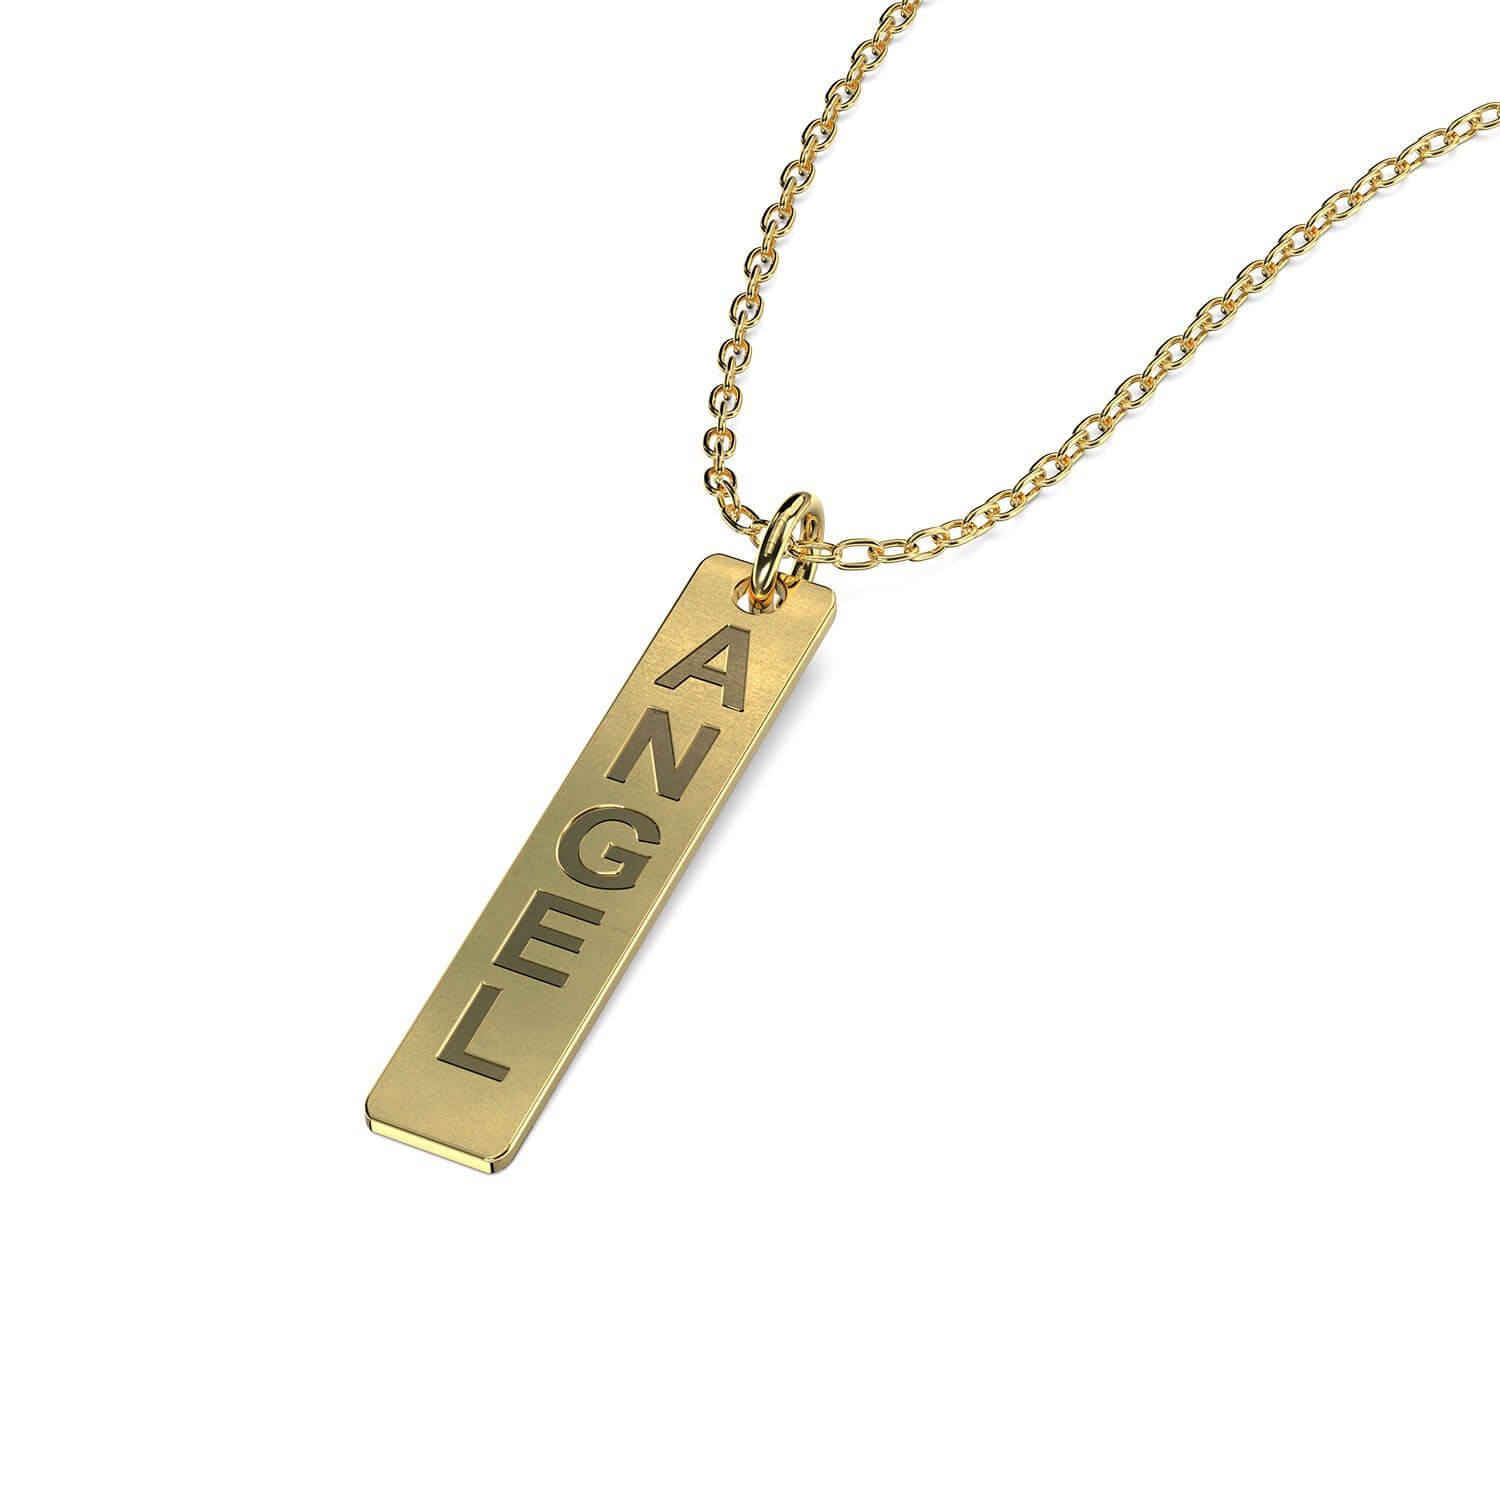 Vertical Bar Engraving Name Necklace